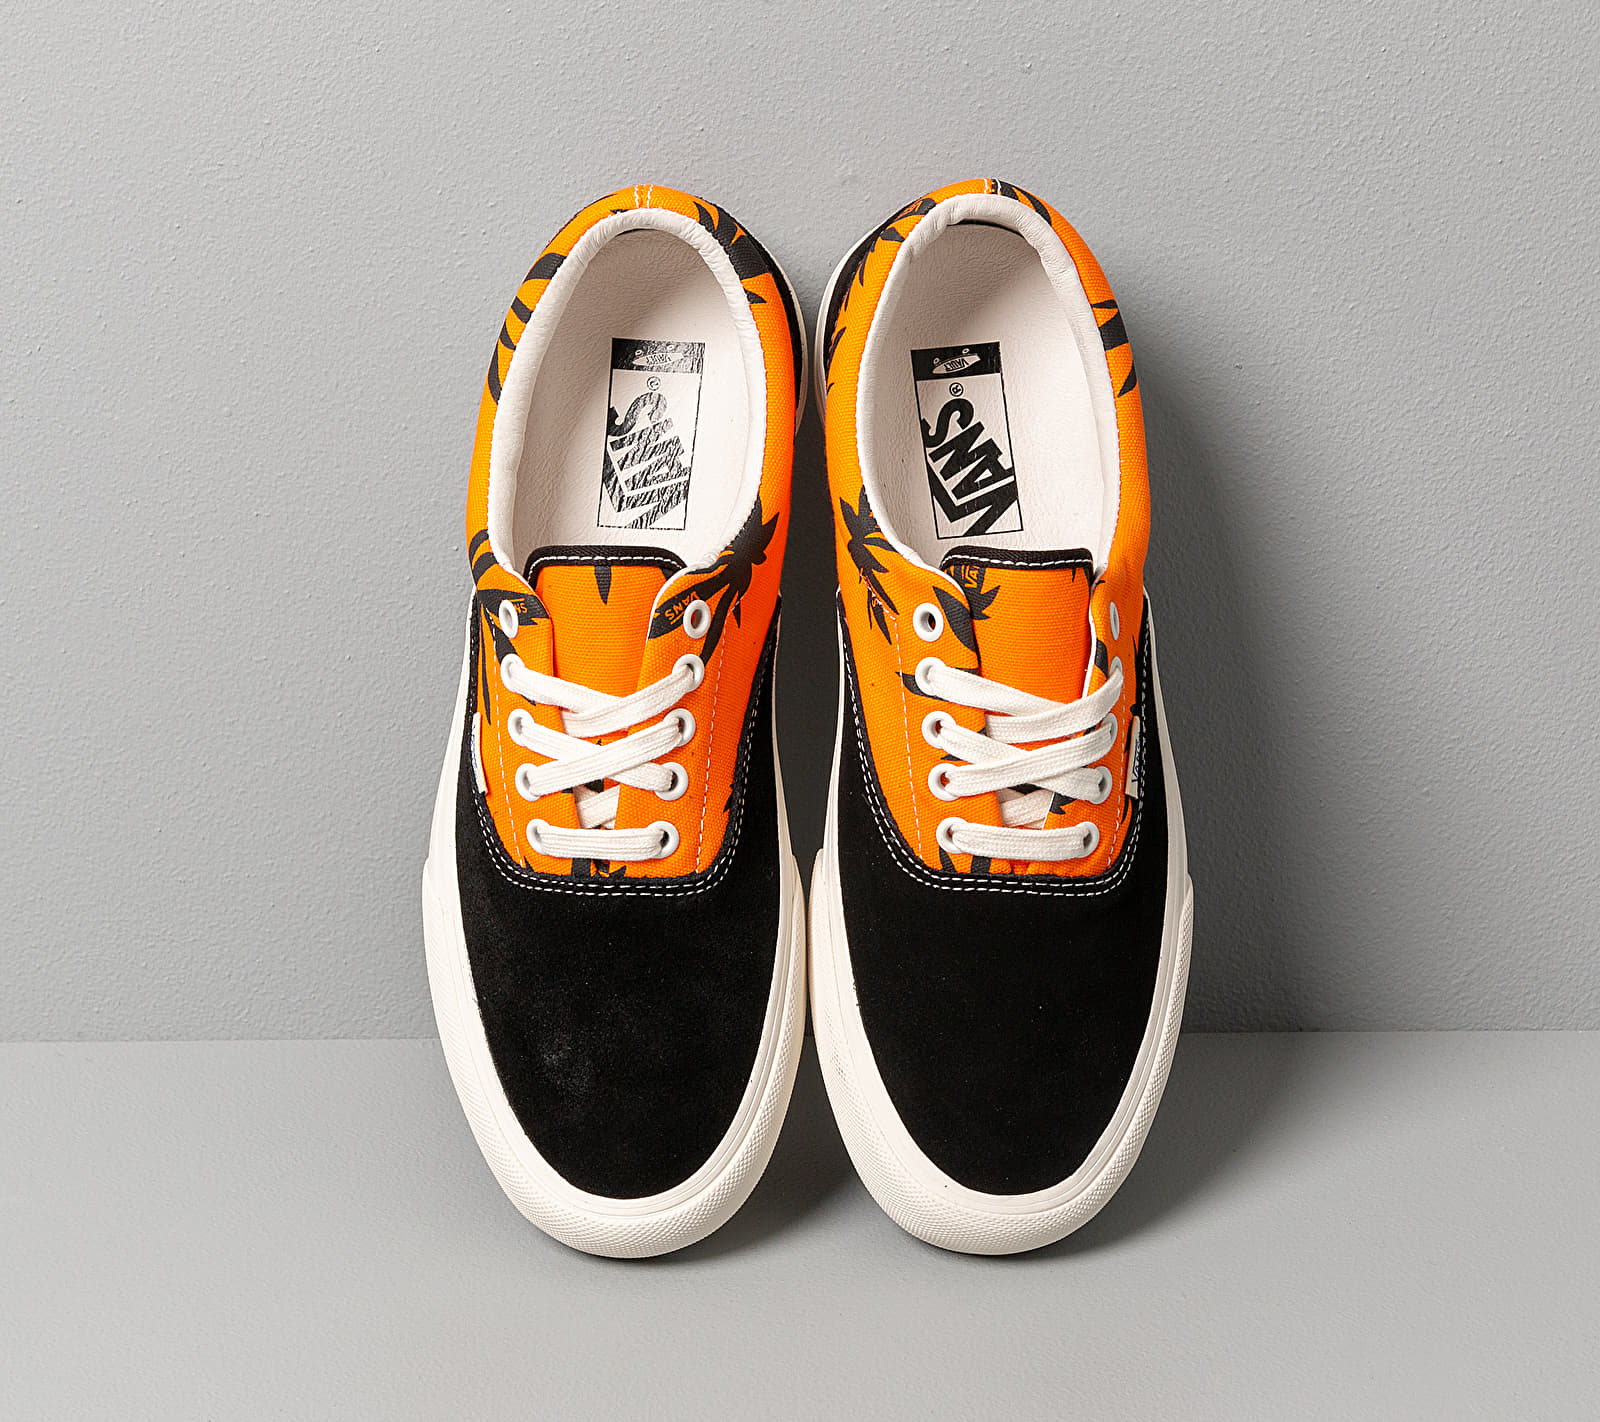 Vans Era VLT LX (VSSL-Surf Kit) Oriole/ Black, Orange